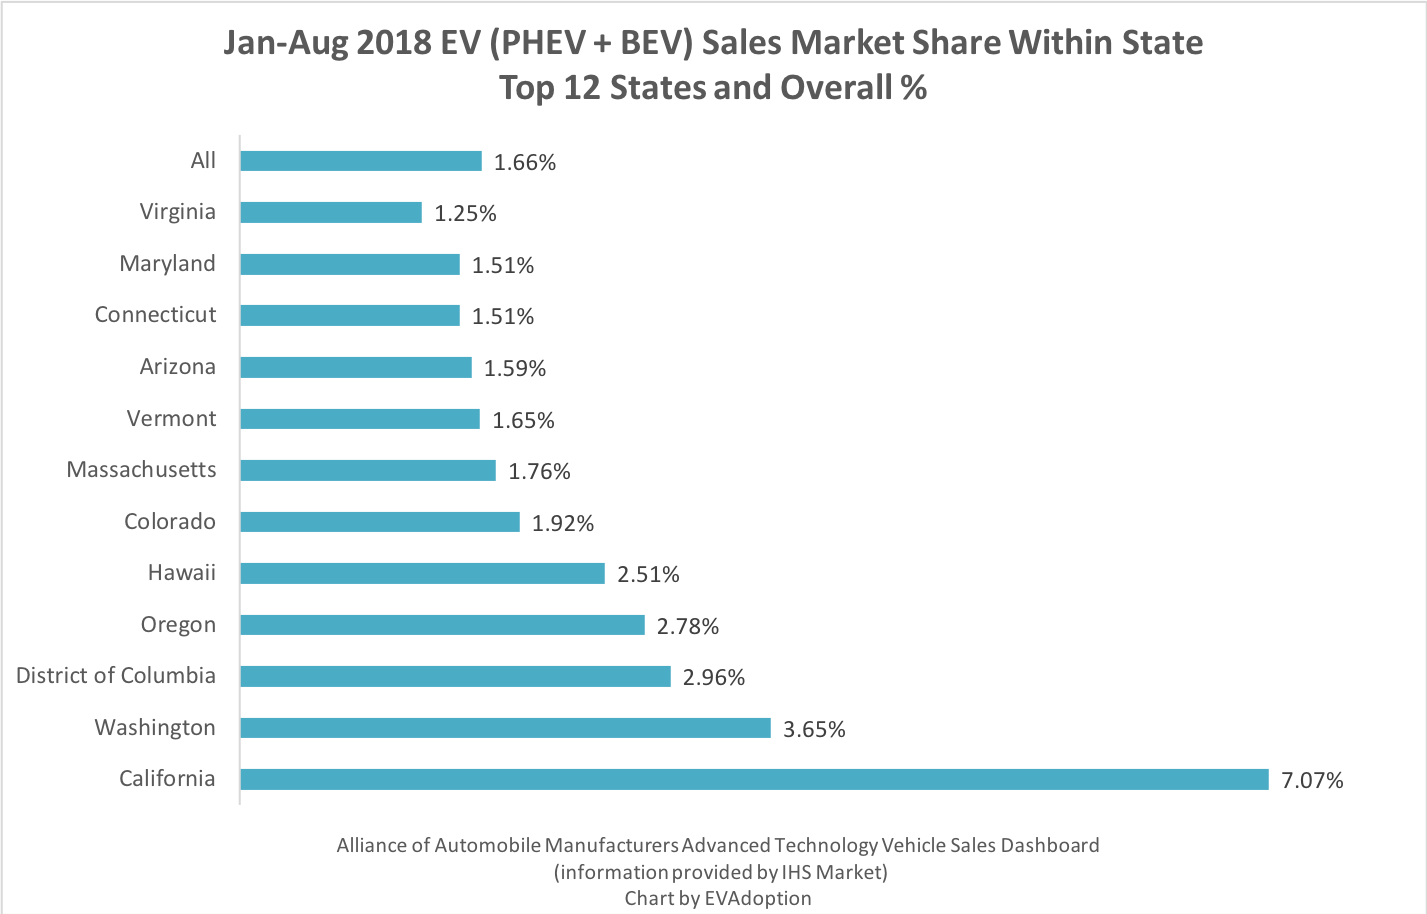 Top 12 States Jan-Aug 2018 EV Sales Market Share